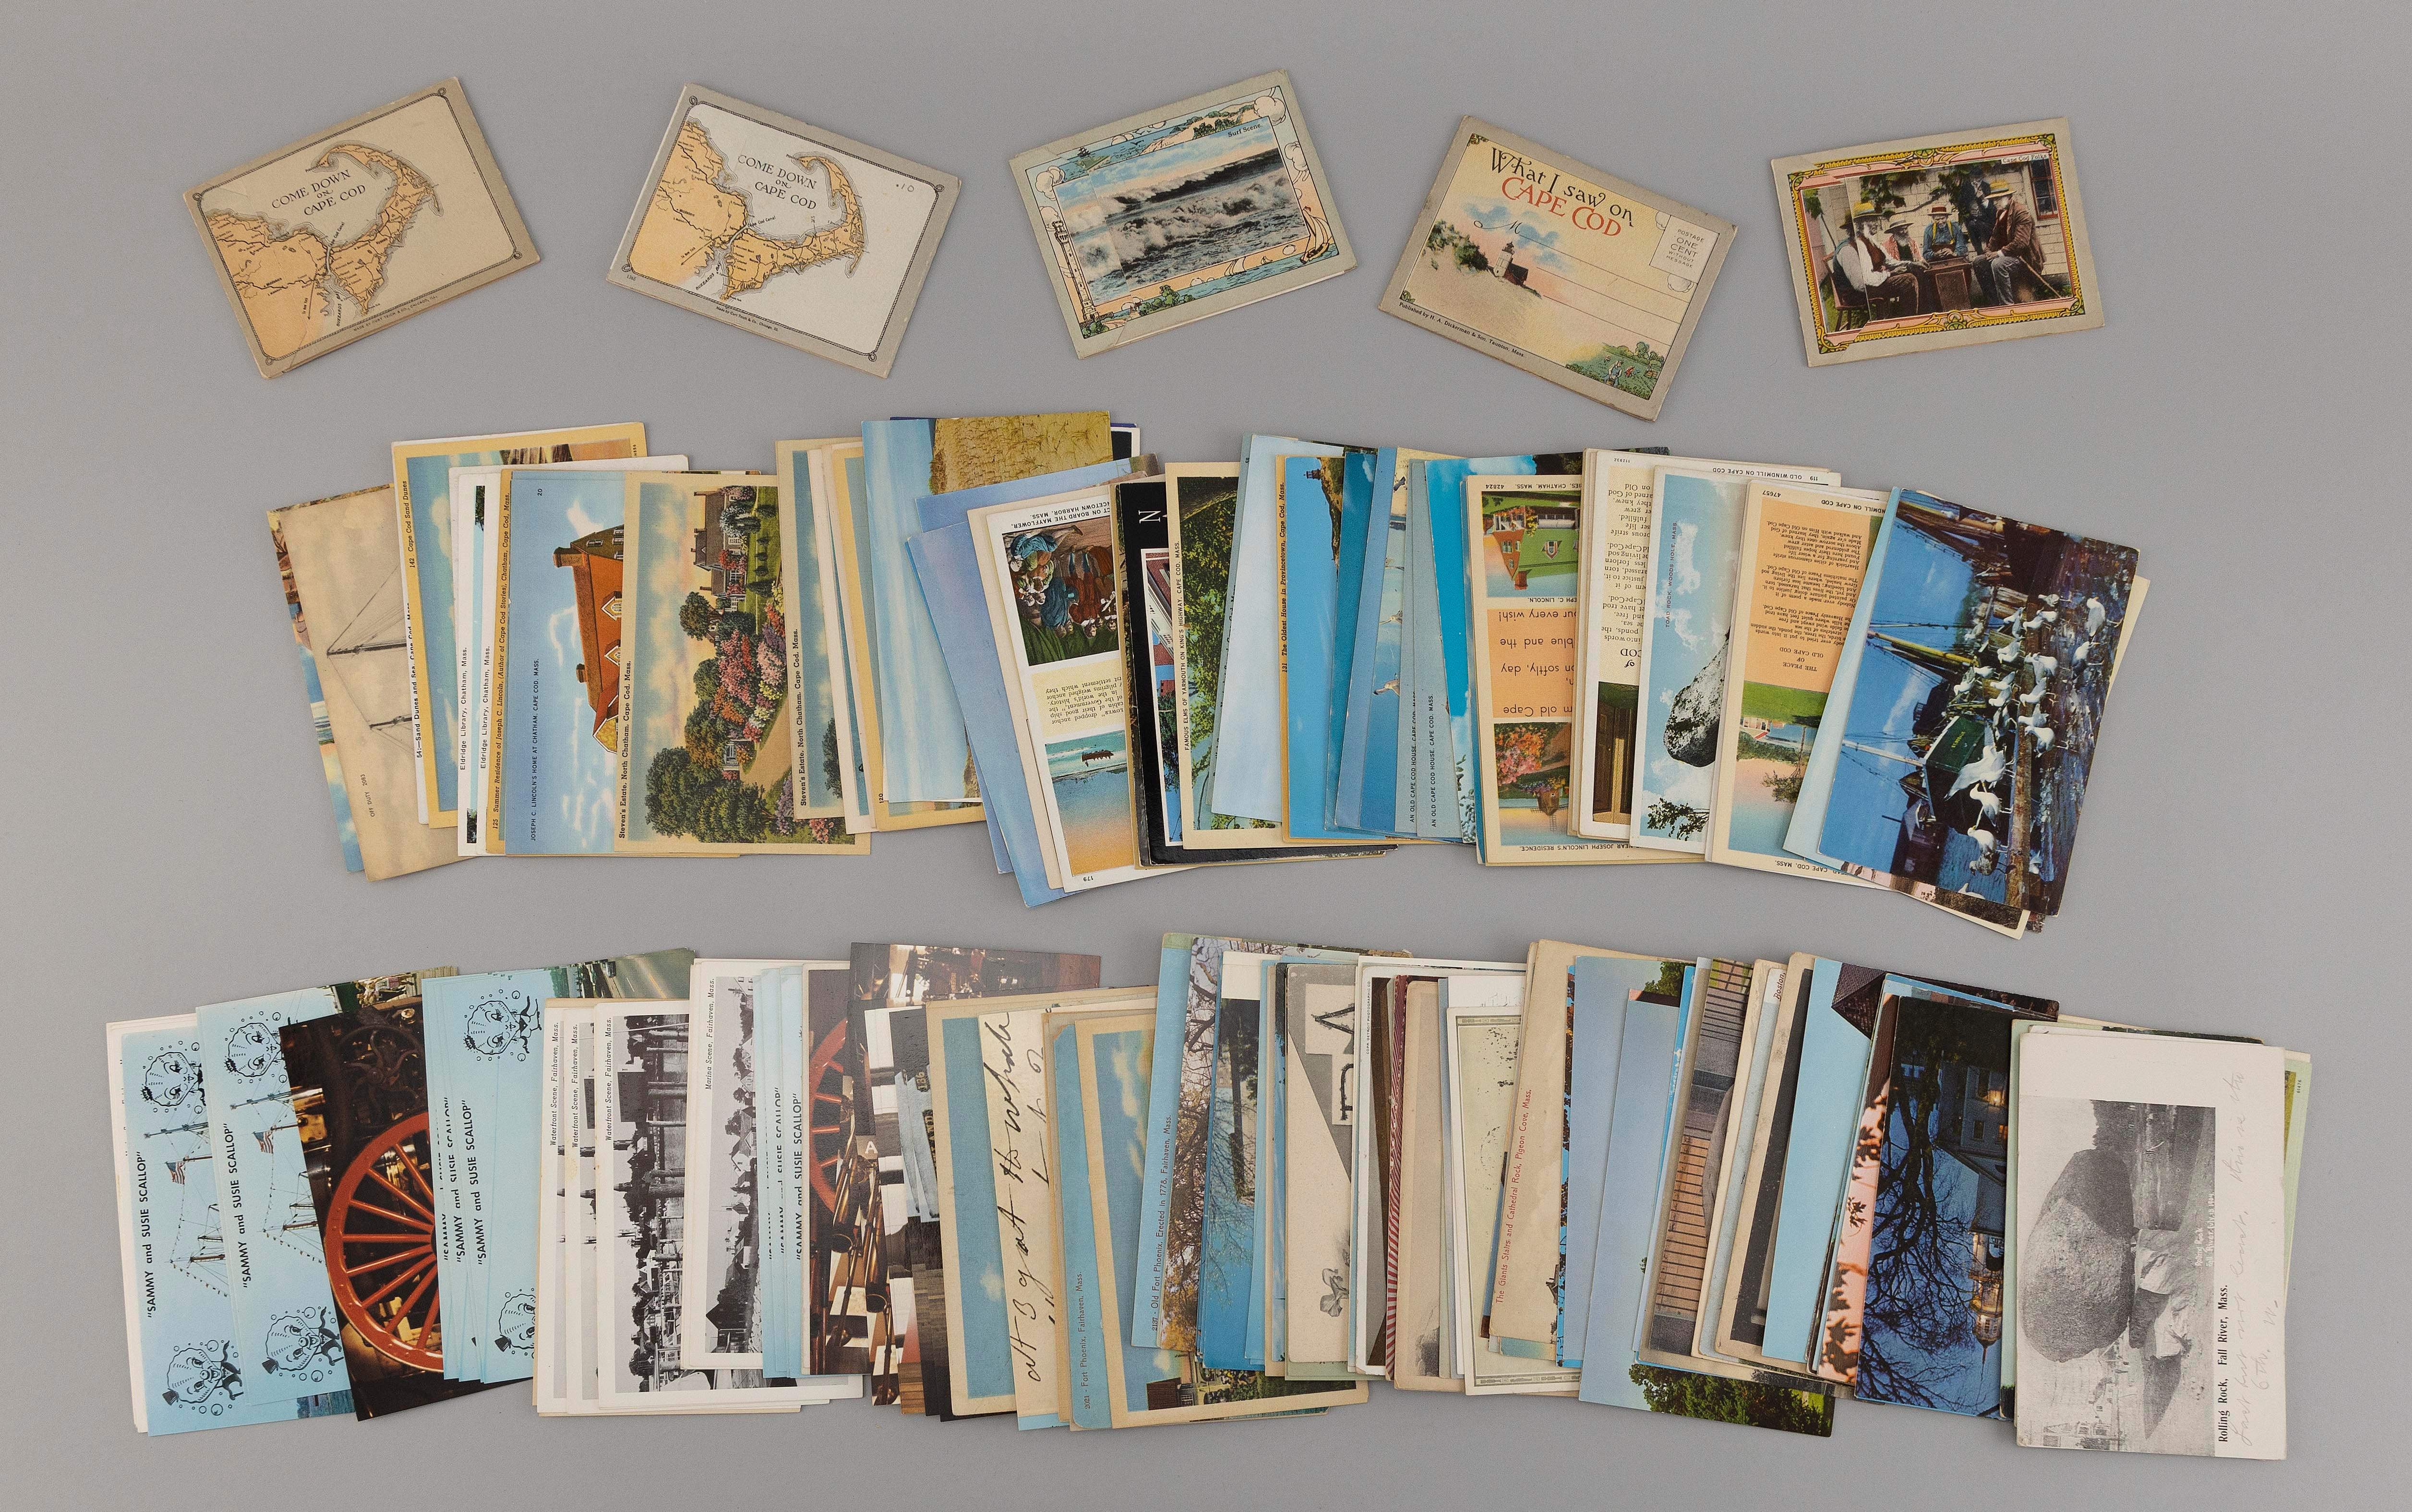 (CAPE COD AND MASSACHUSETTS) 189 POSTCARDS Includes 68 general subject and views of Cape Cod cards, with five small folders and 121...